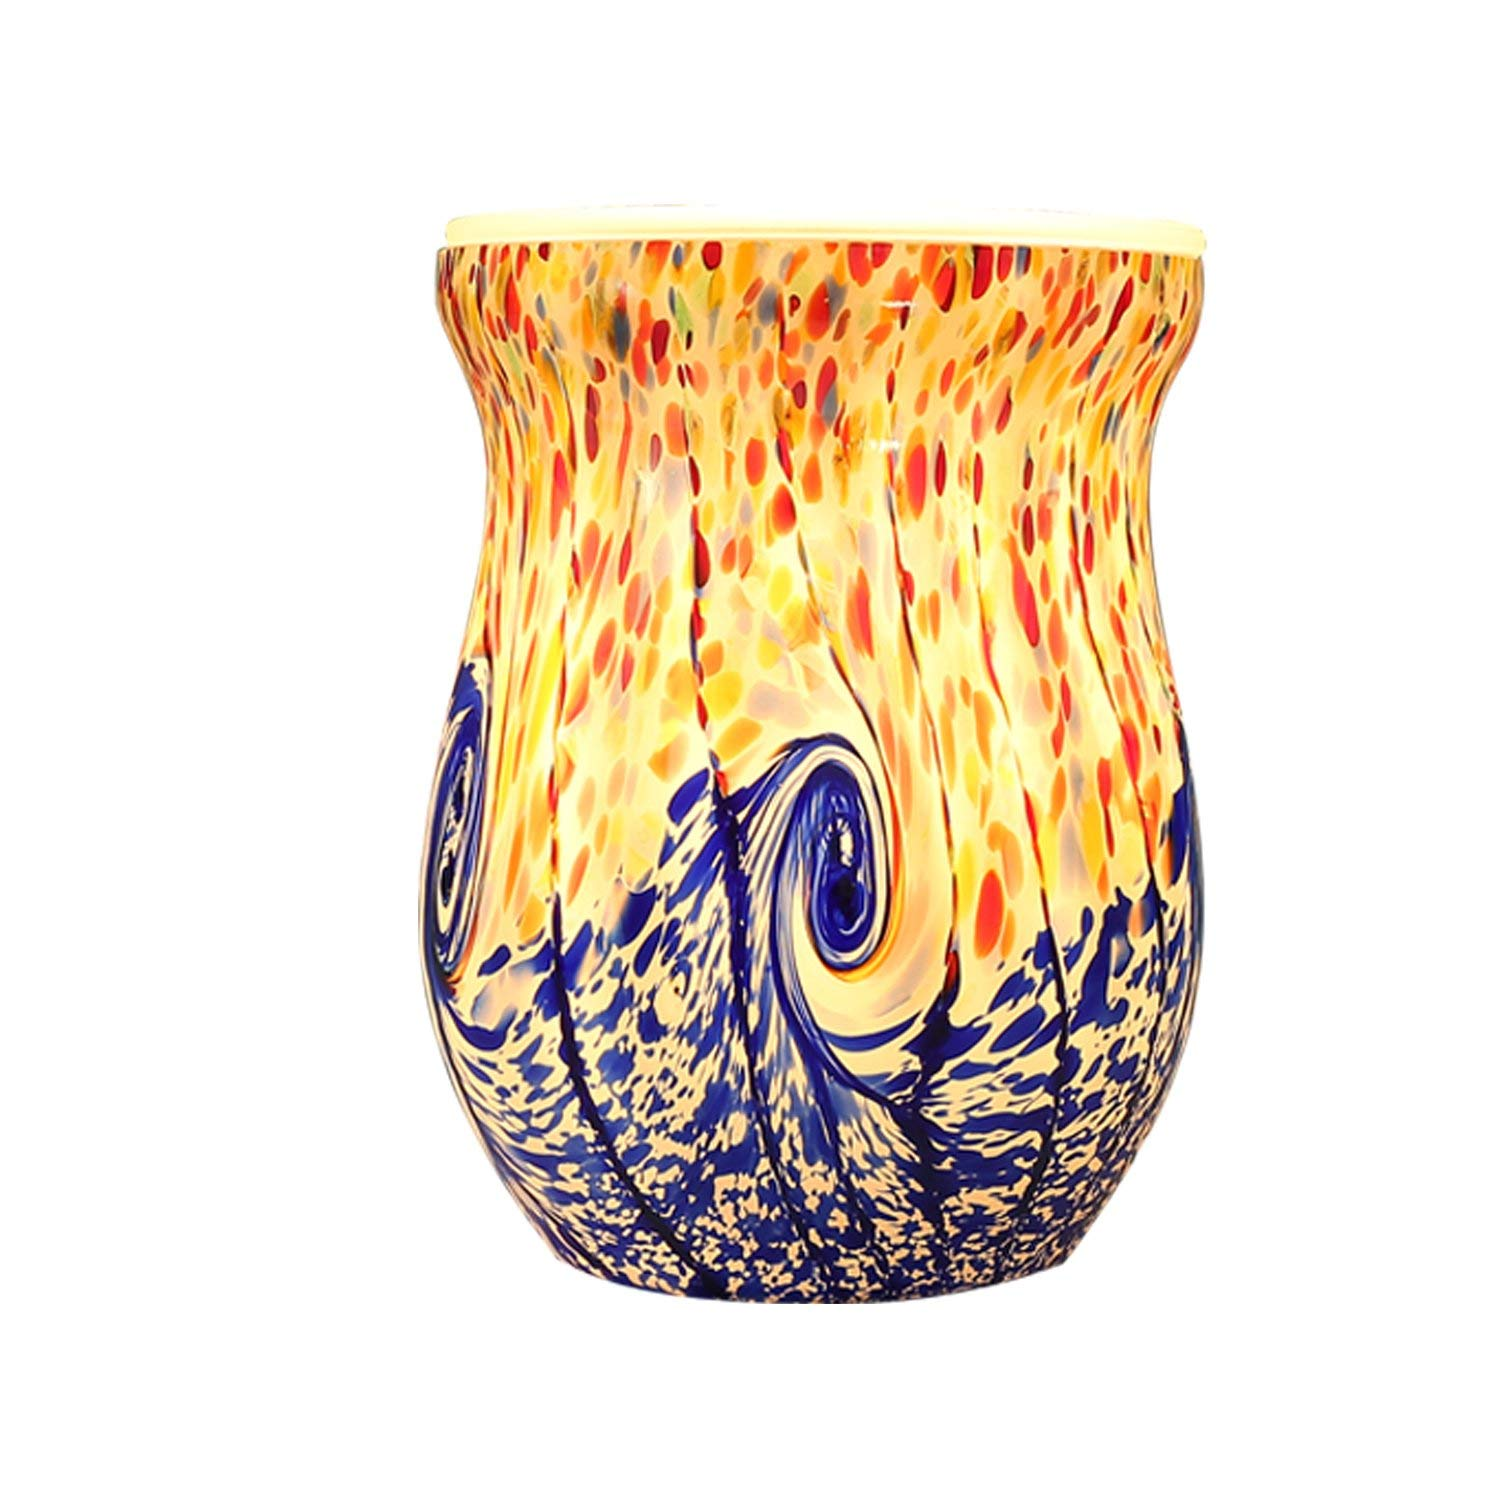 8. COOSA Ocean Wave Glass Electric Incense Oil Warmer Wax Tart Burner: